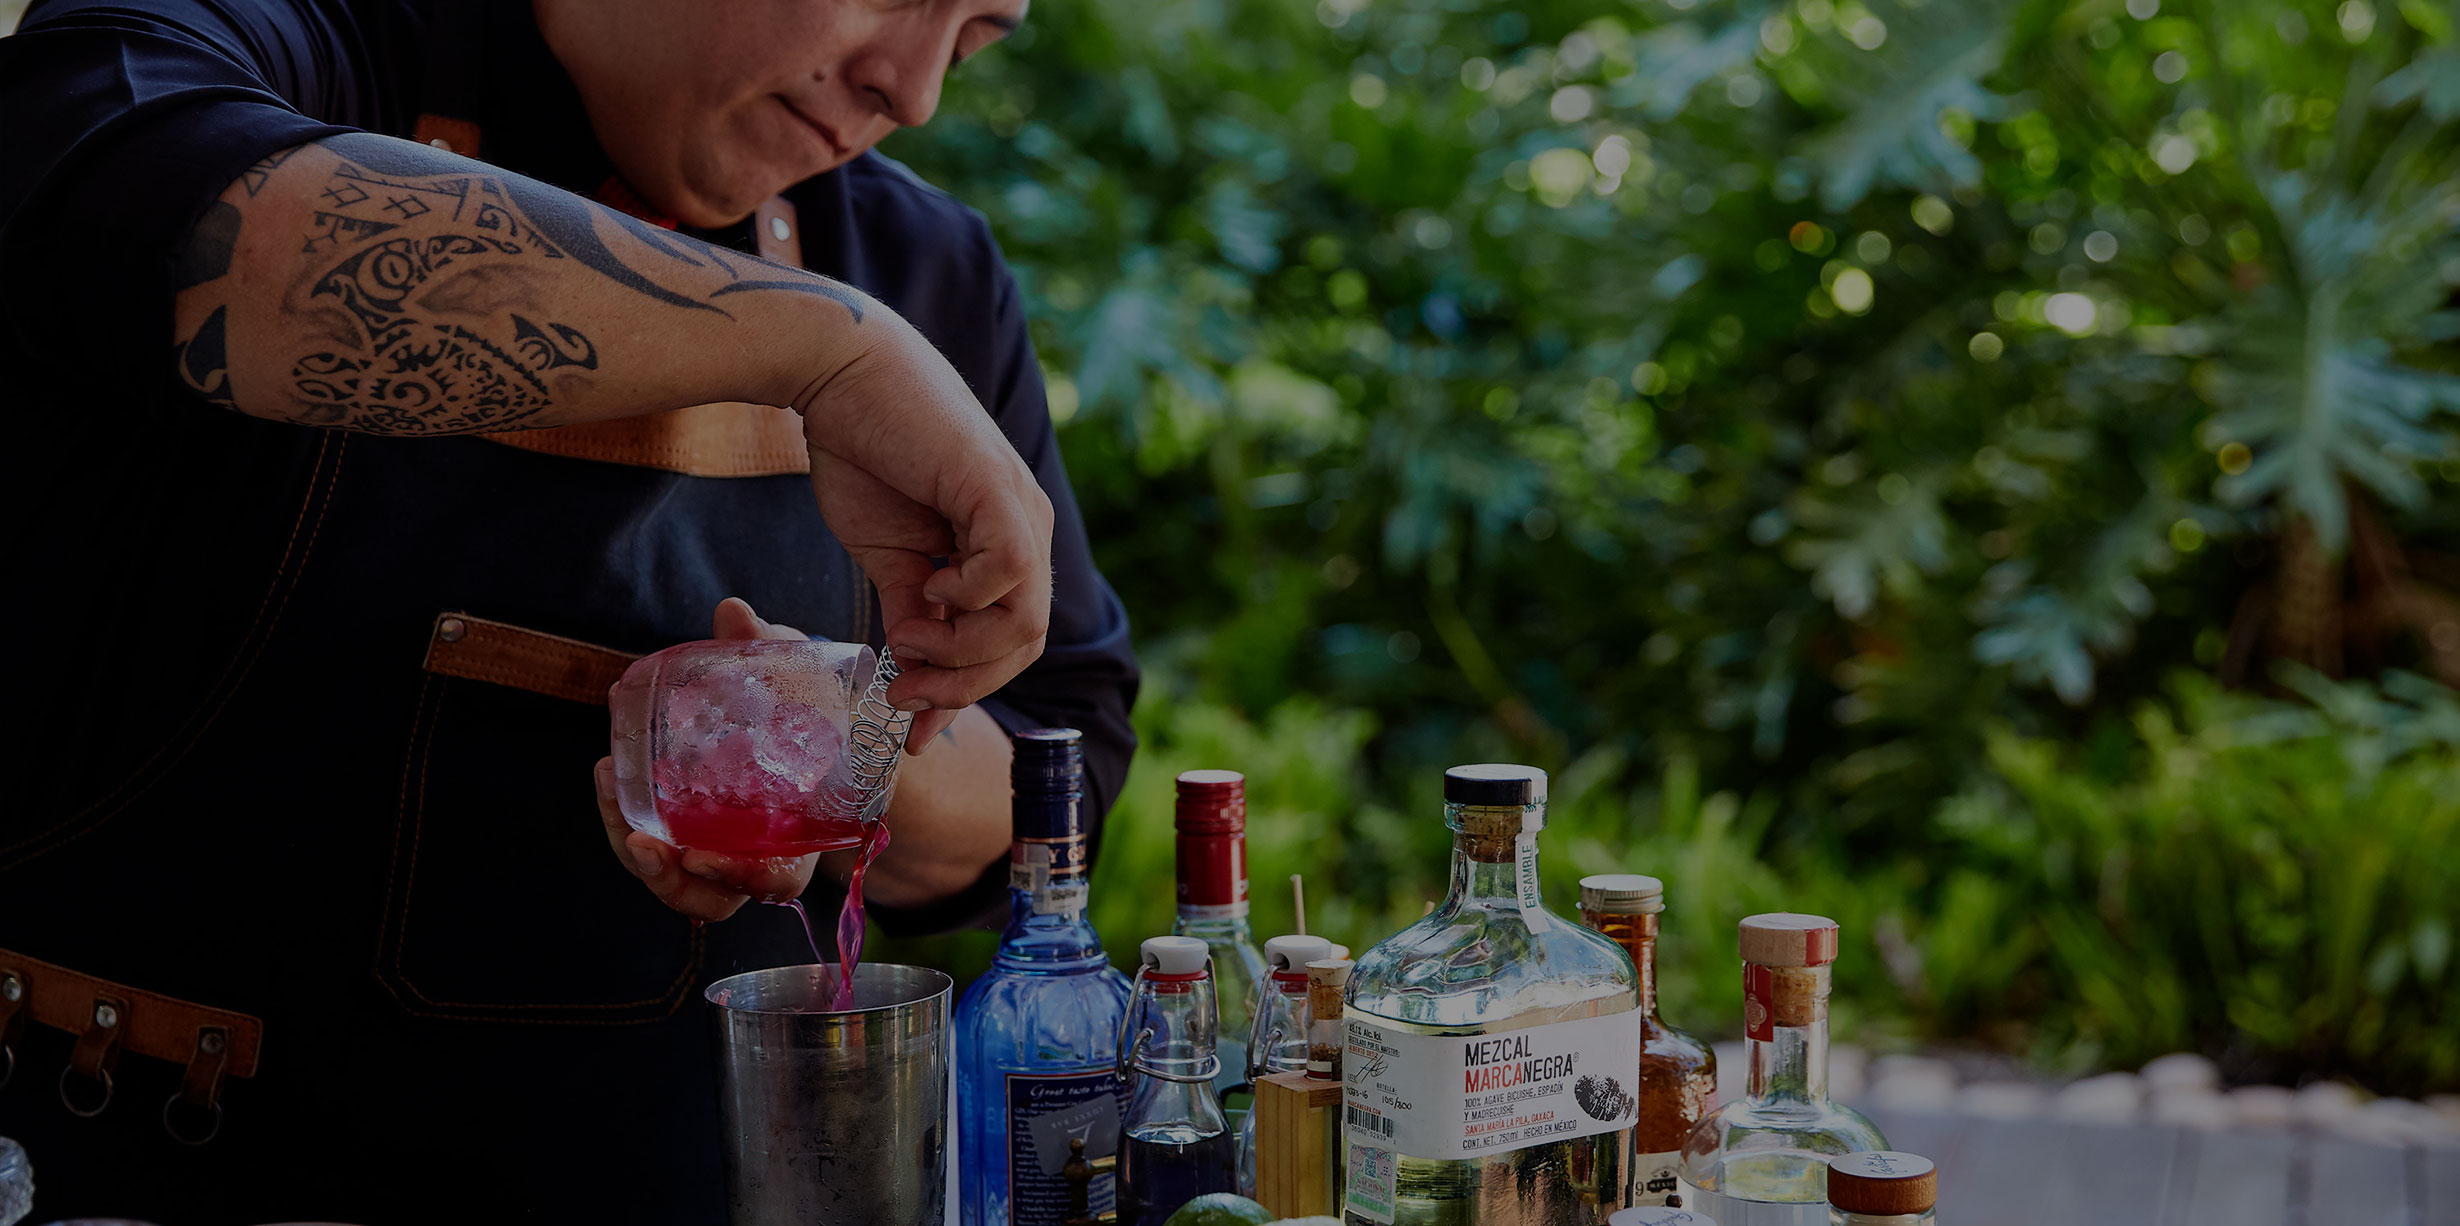 Shaking Things Up: Spotlight on Mixologist Vicente Díaz Salcedo